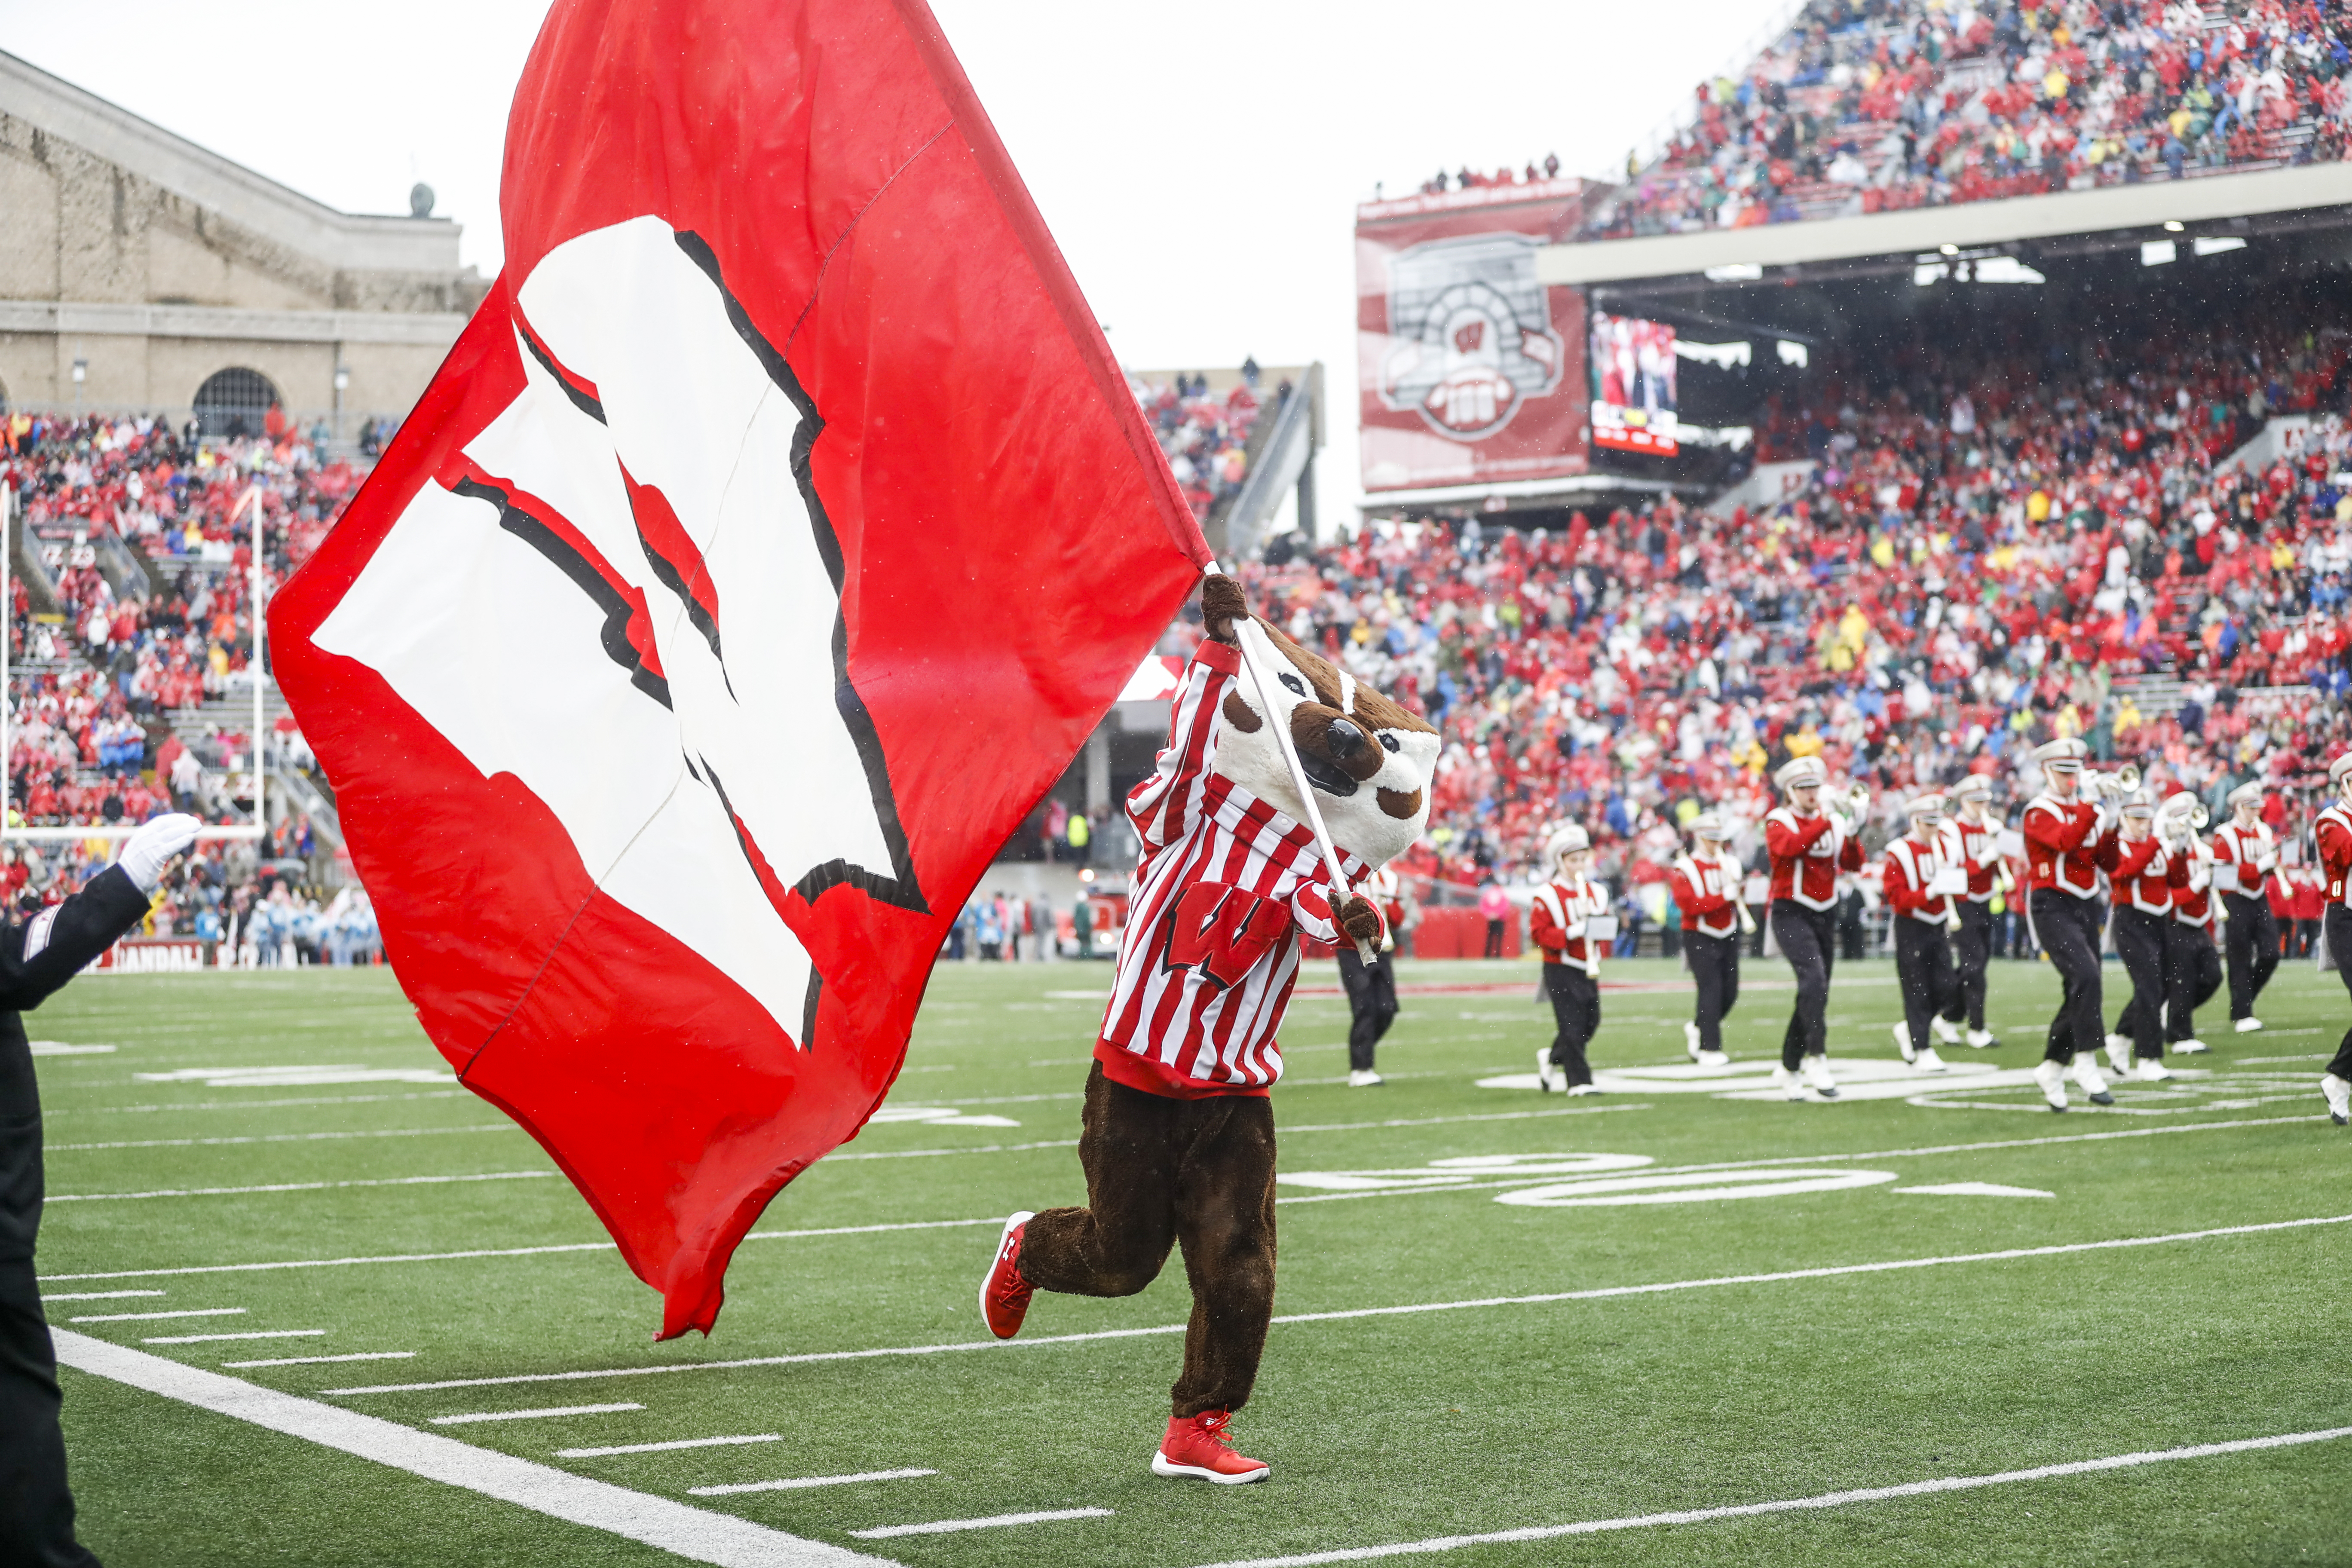 COLLEGE FOOTBALL: OCT 14 Purdue at Wisconsin